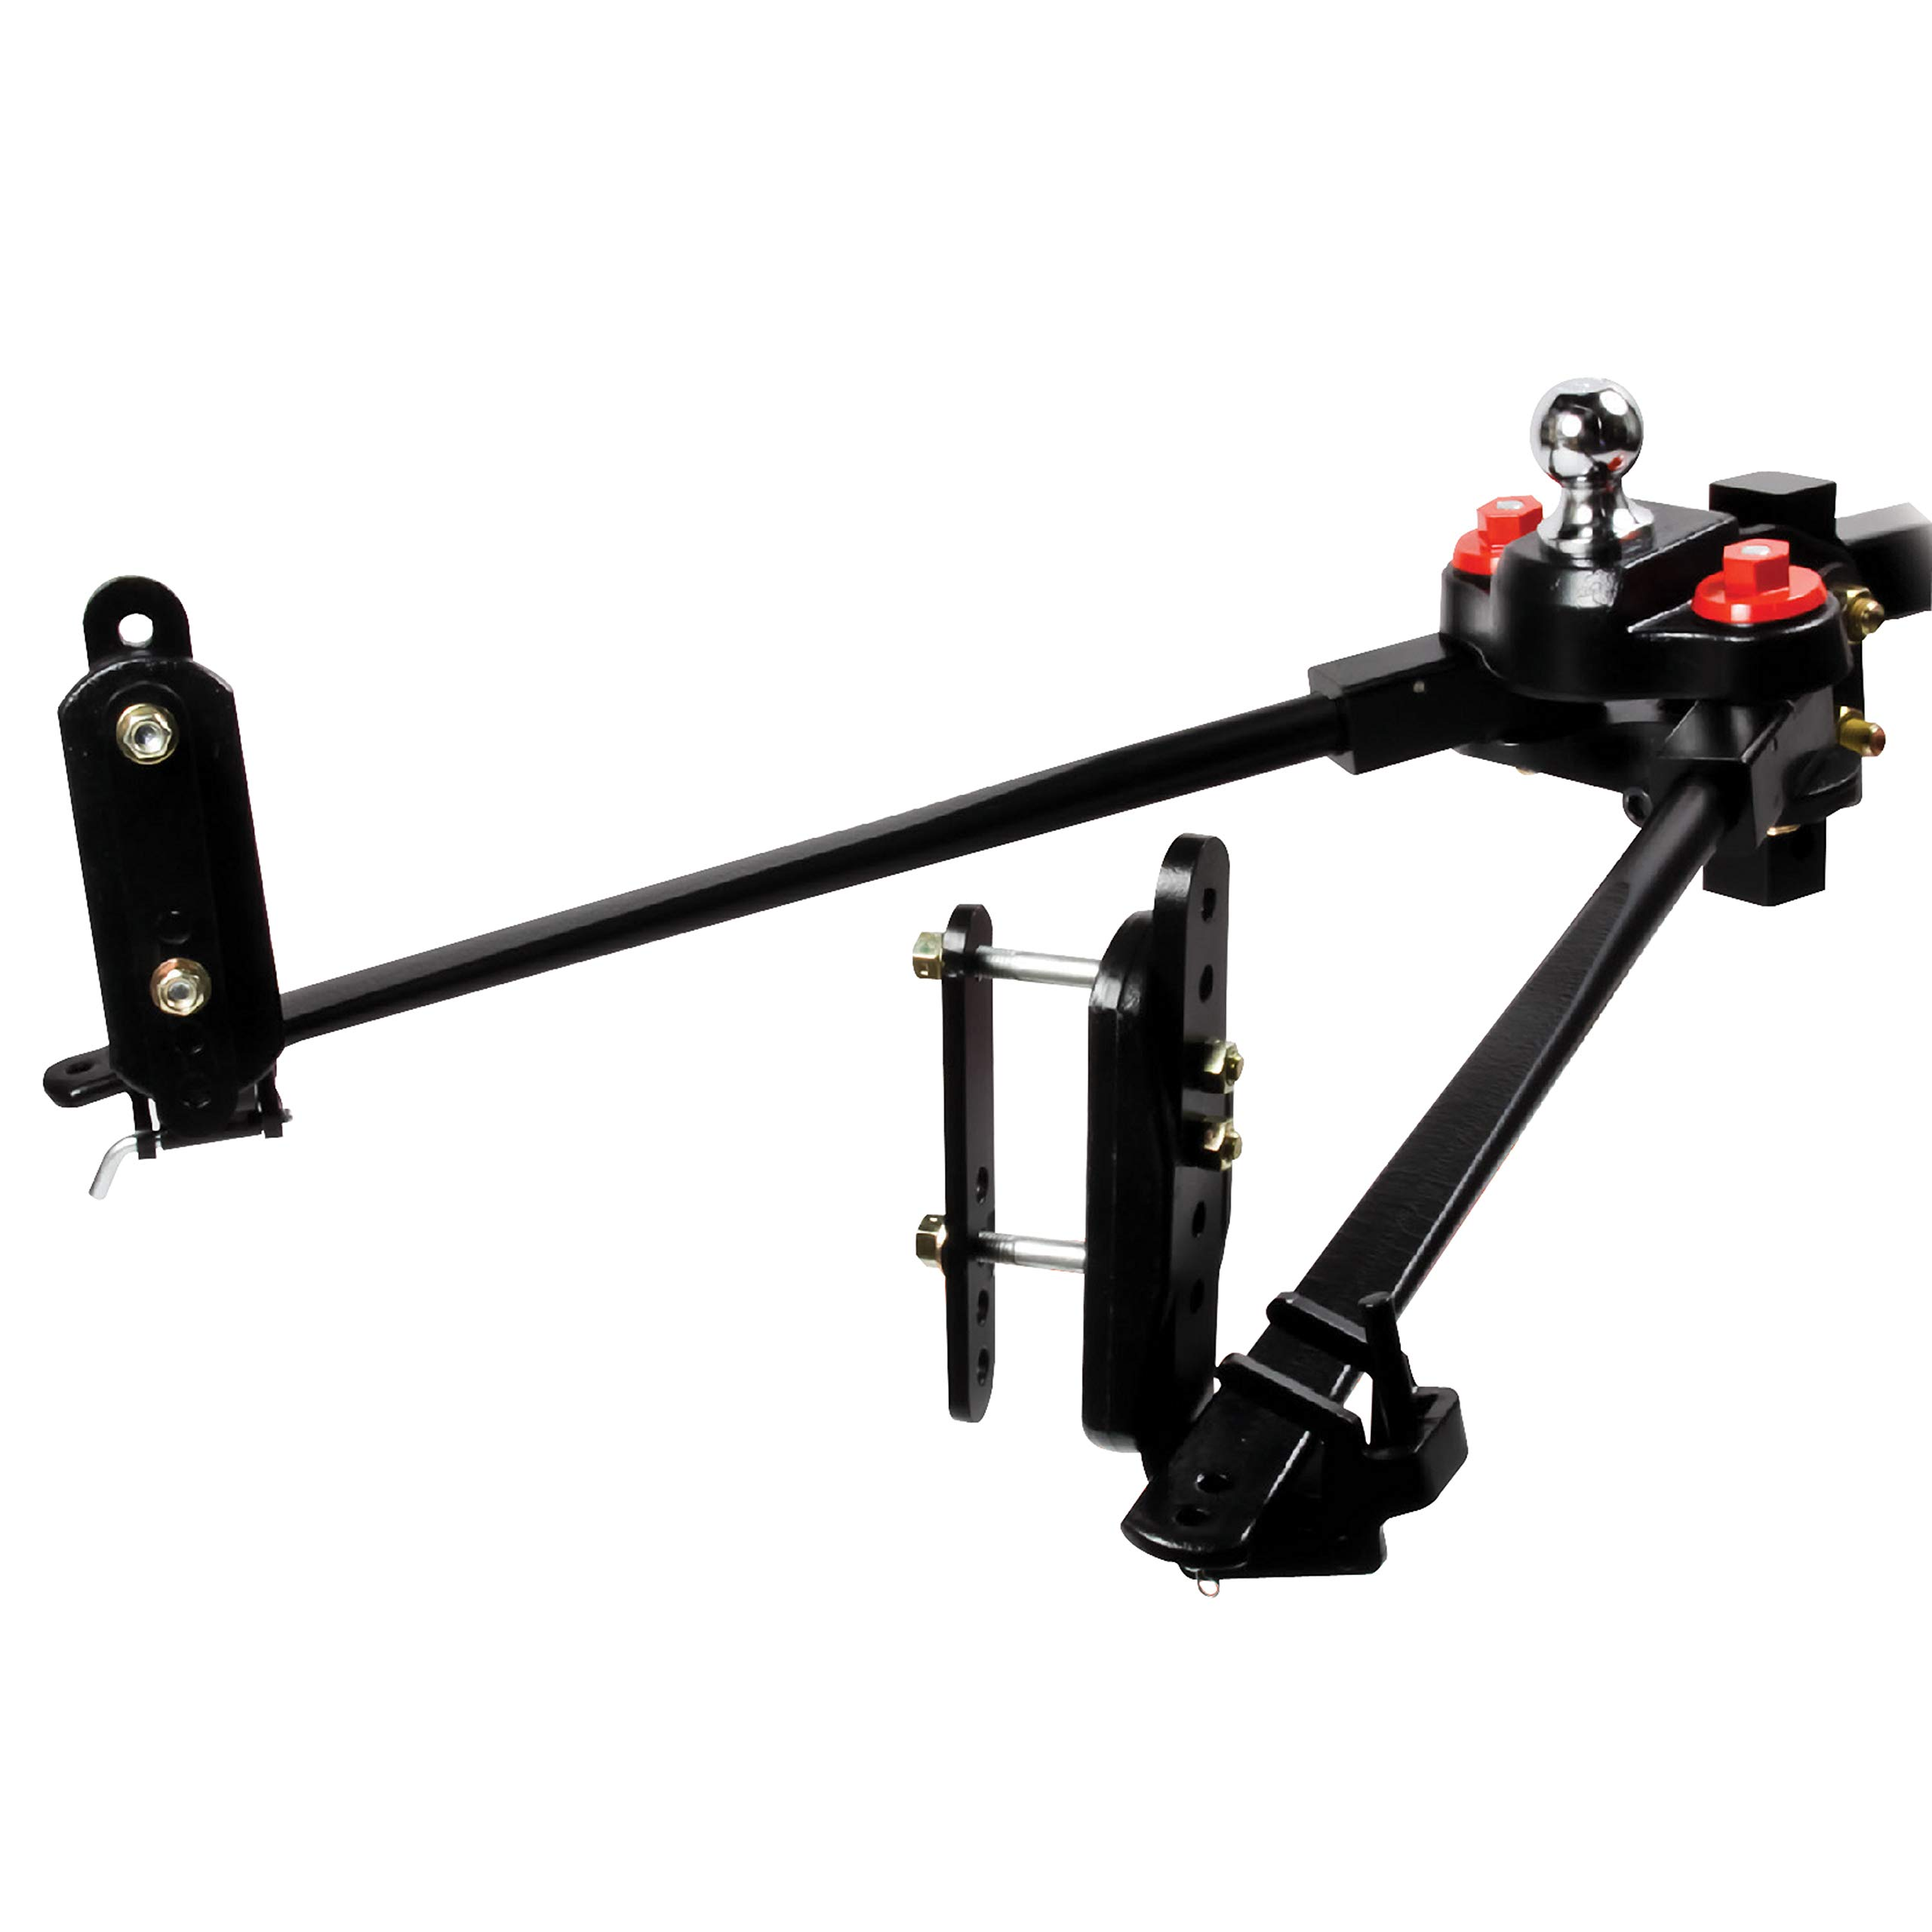 Eaz-Lift 48703 Trekker Weight Distributing Hitch with Adaptive Sway Control - 1000 lb. Weight Rating by EAZ LIFT